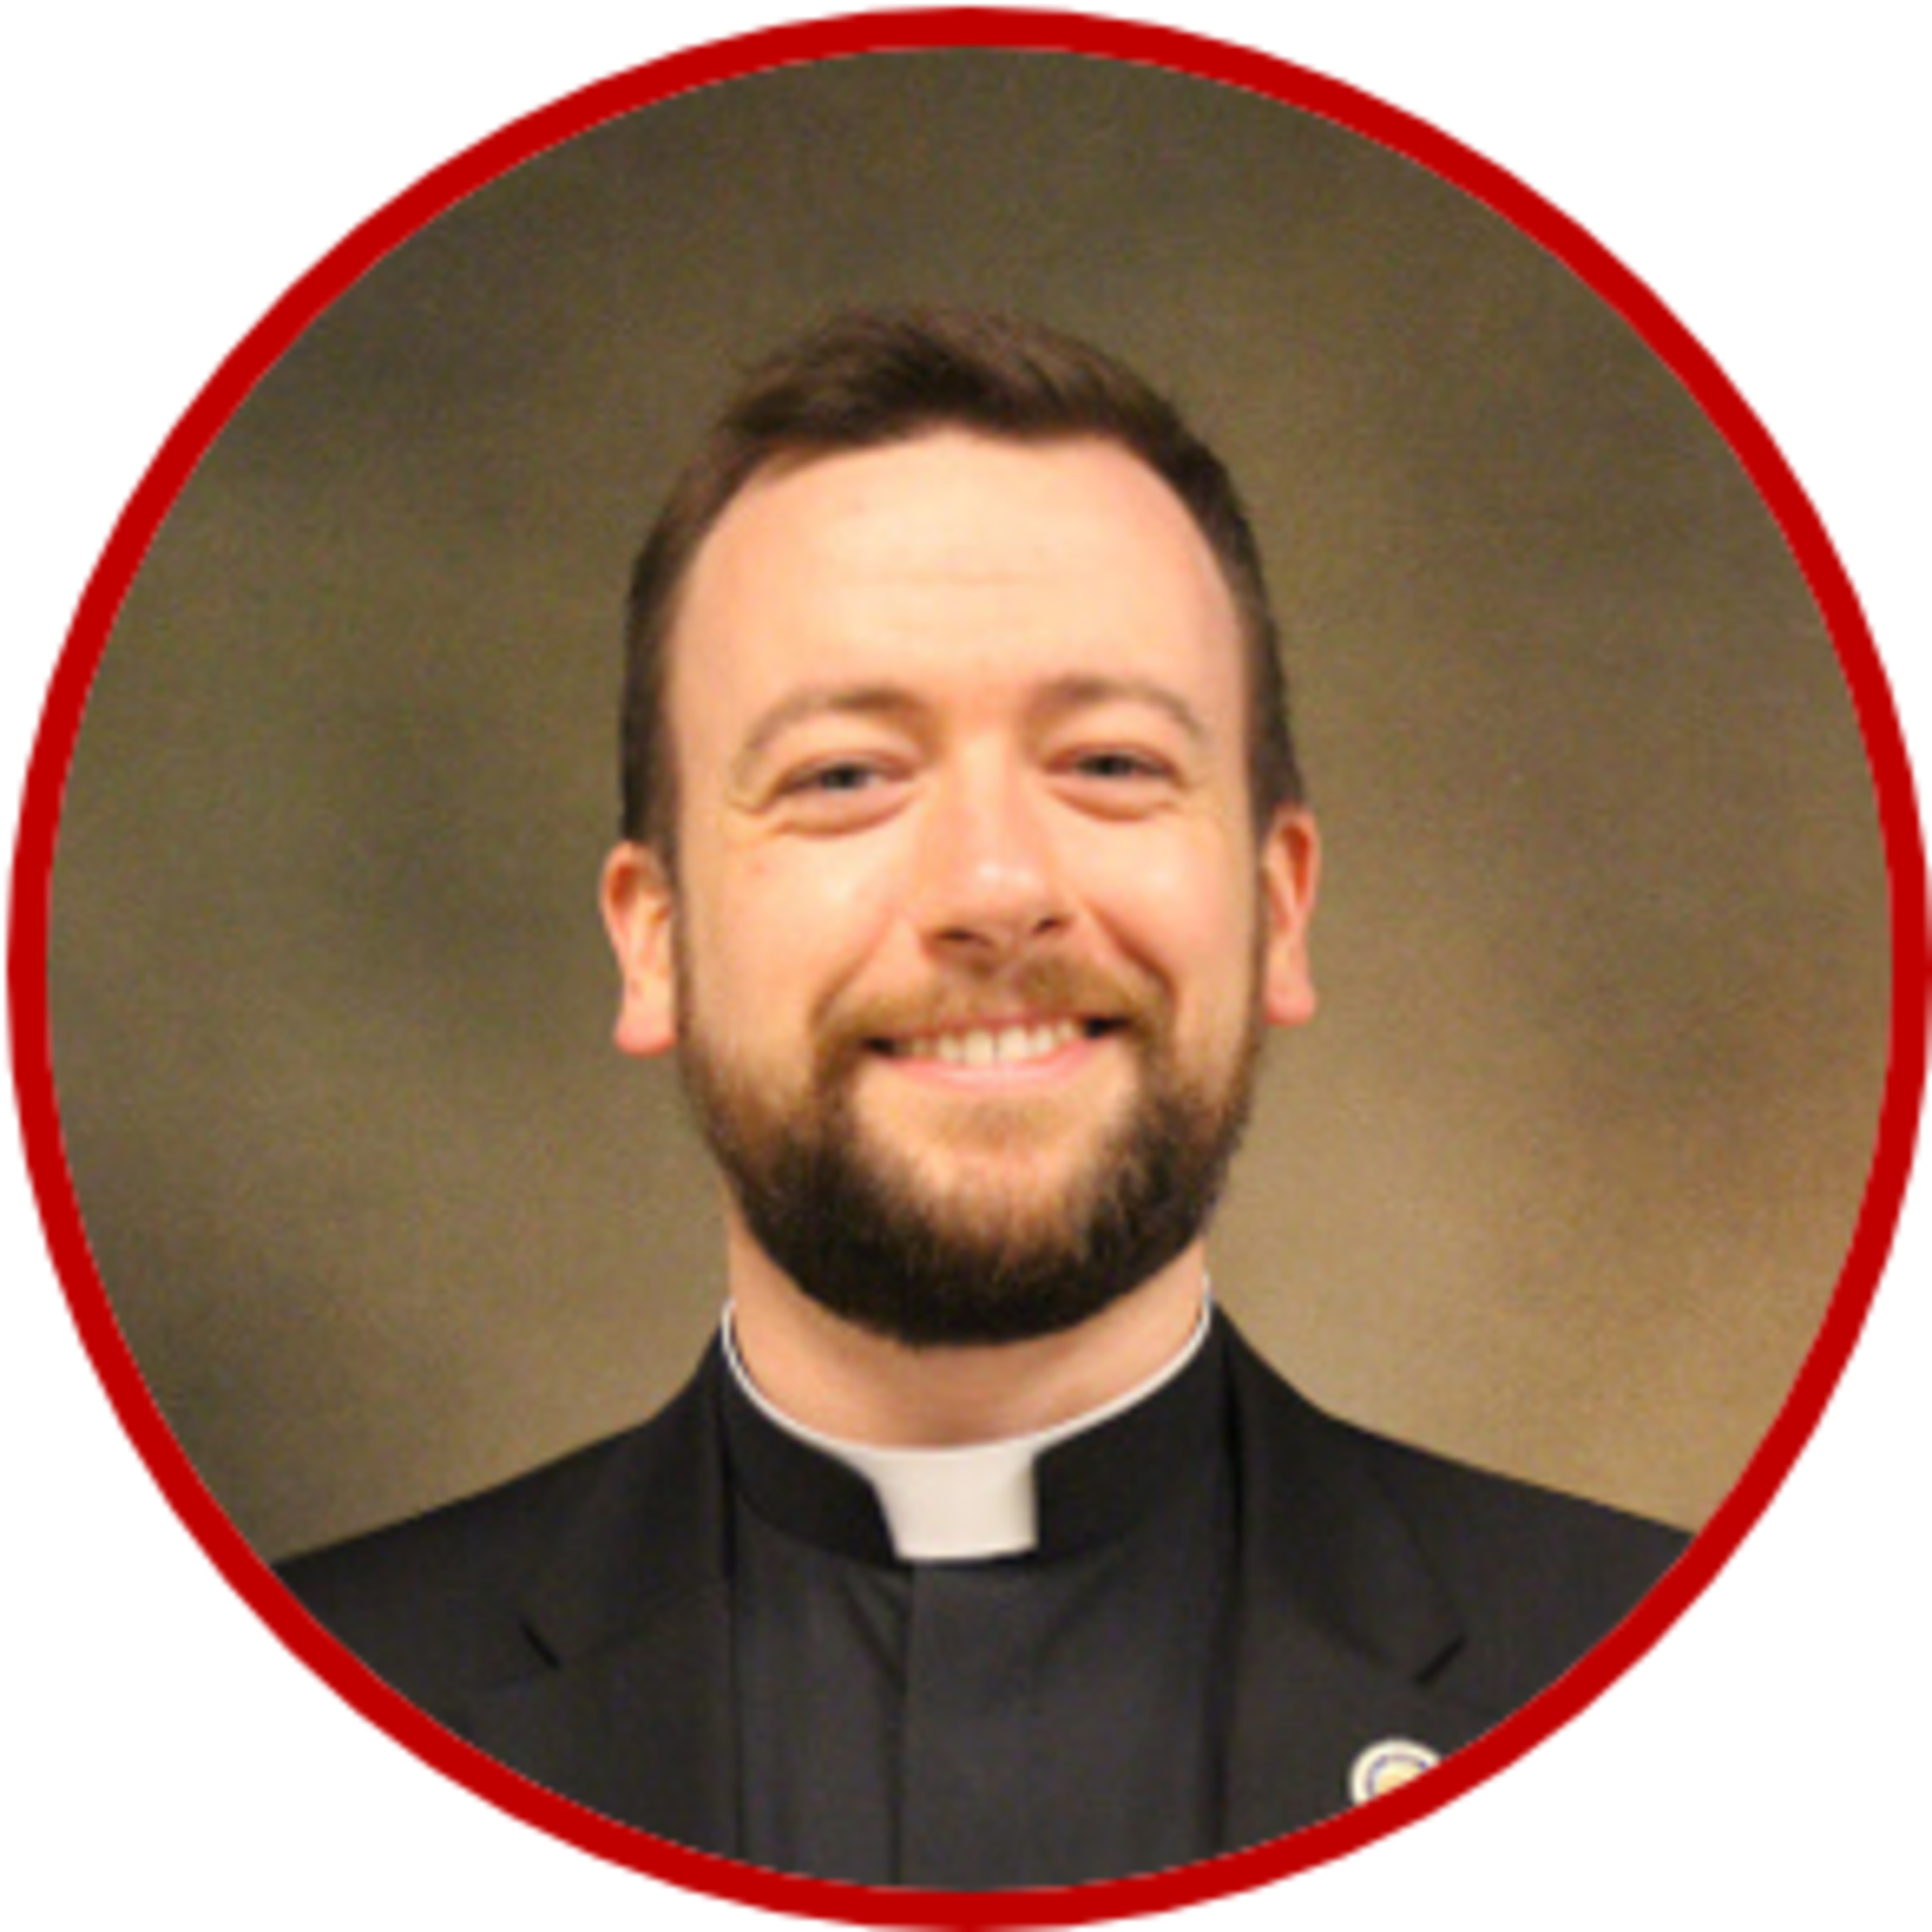 13th Sunday in Ordinary Time: Fr. Coady Owens